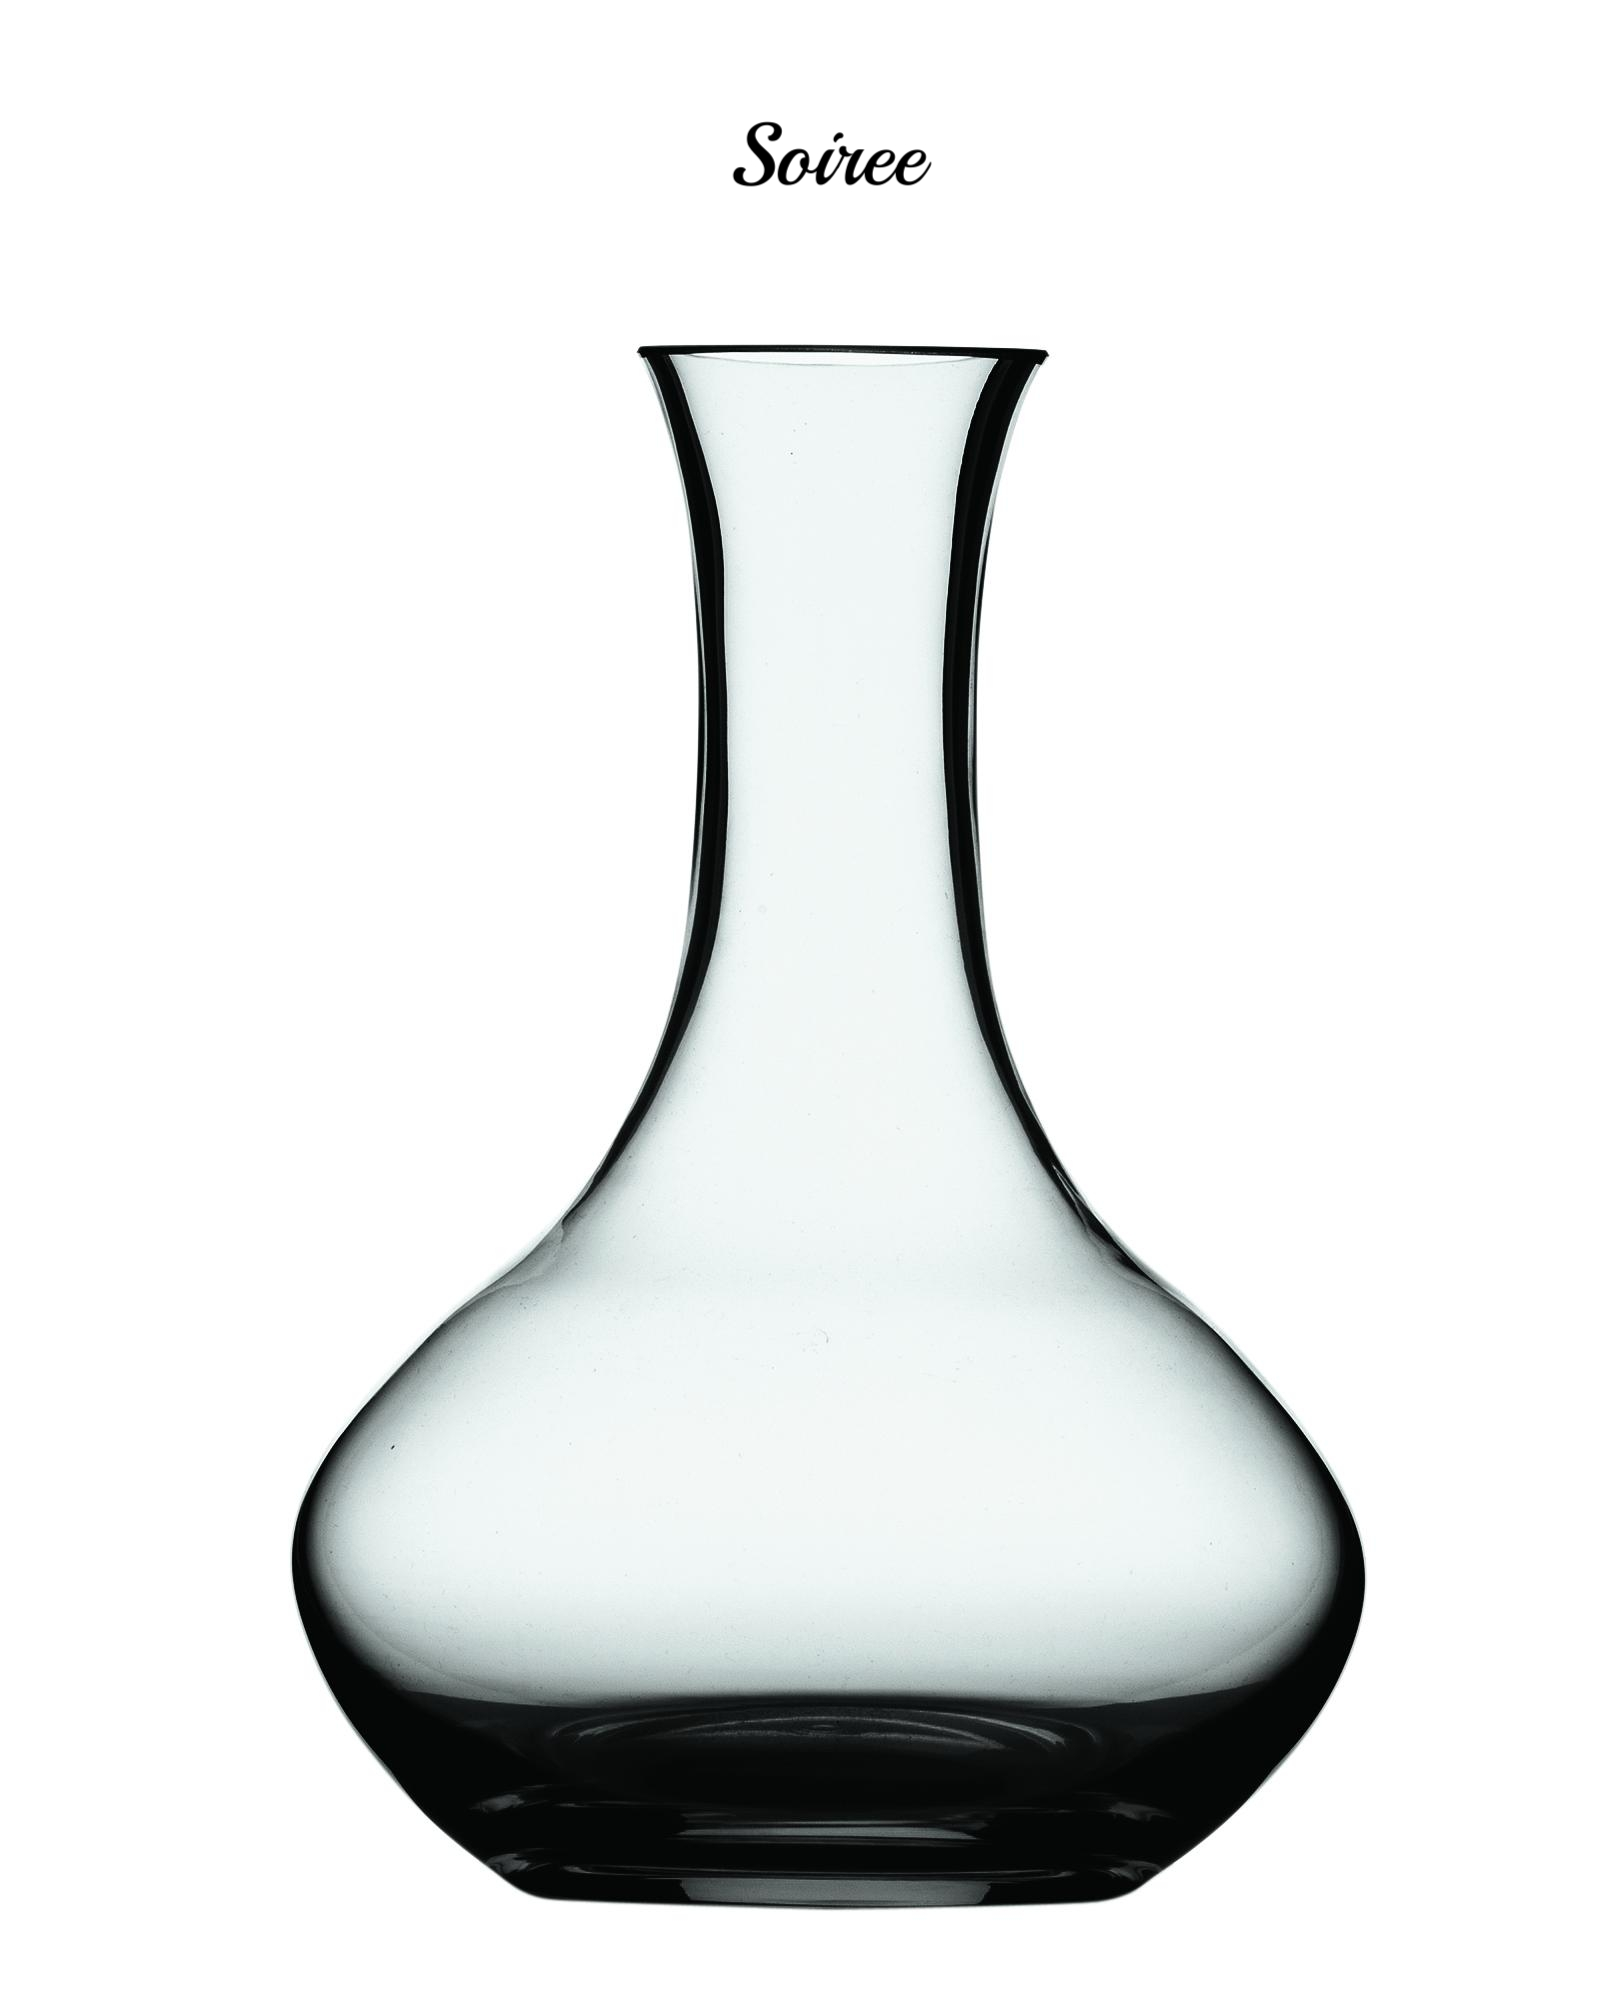 7100057 Soiree Decanter 1000ml.jpg